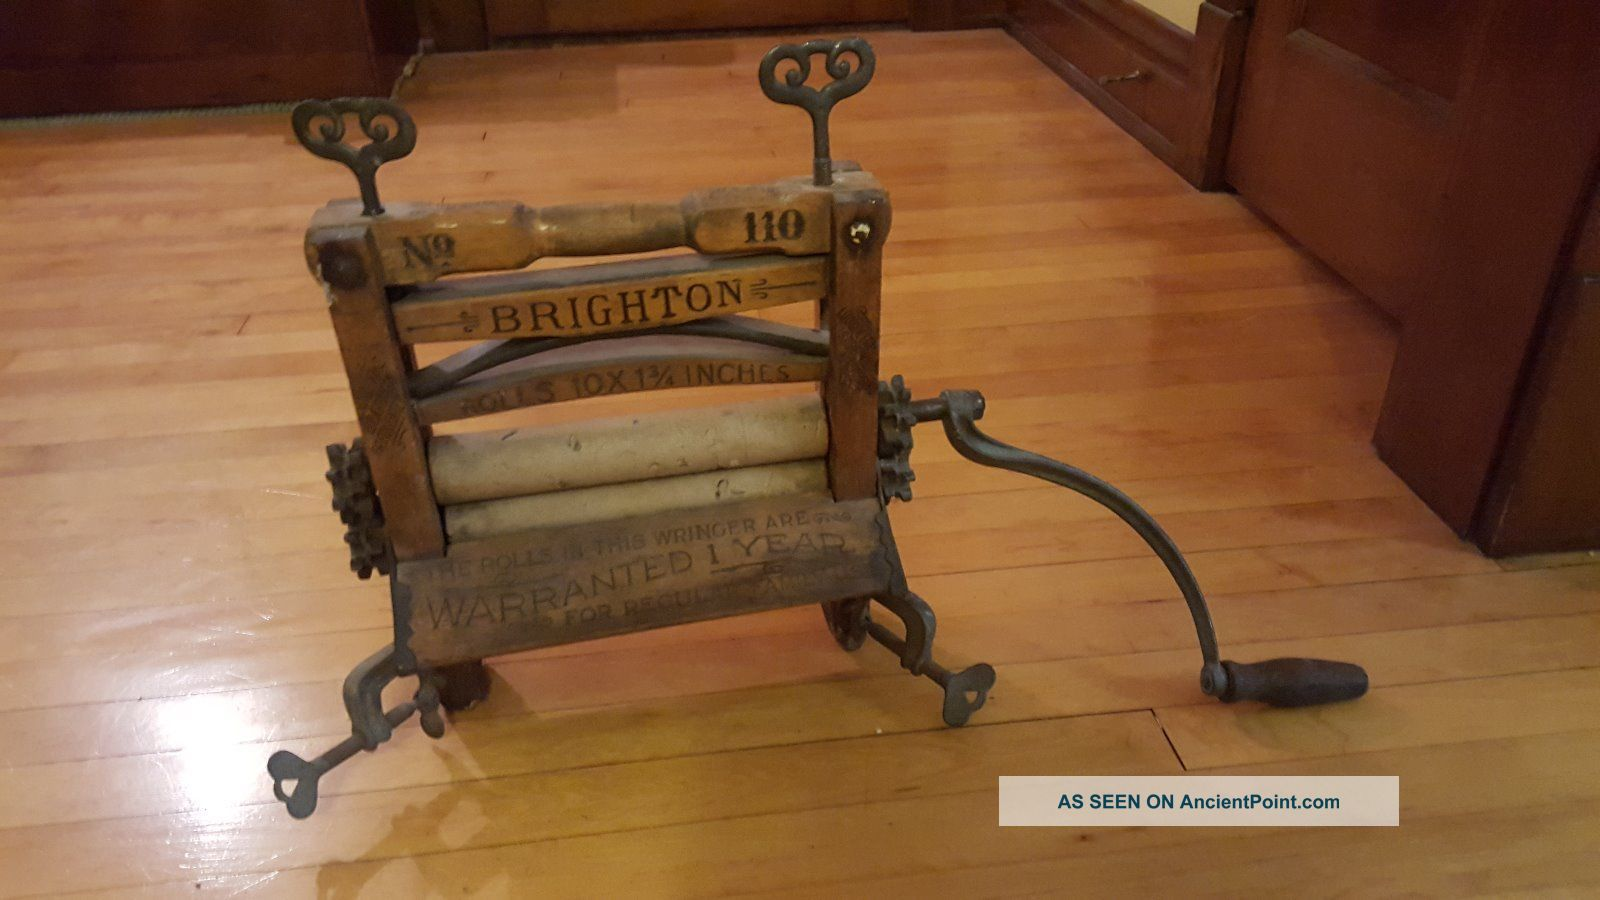 Vintage Brighton Np 110 Wooden Clothes Wringer Washer With Arm Crank Clothing Wringers photo